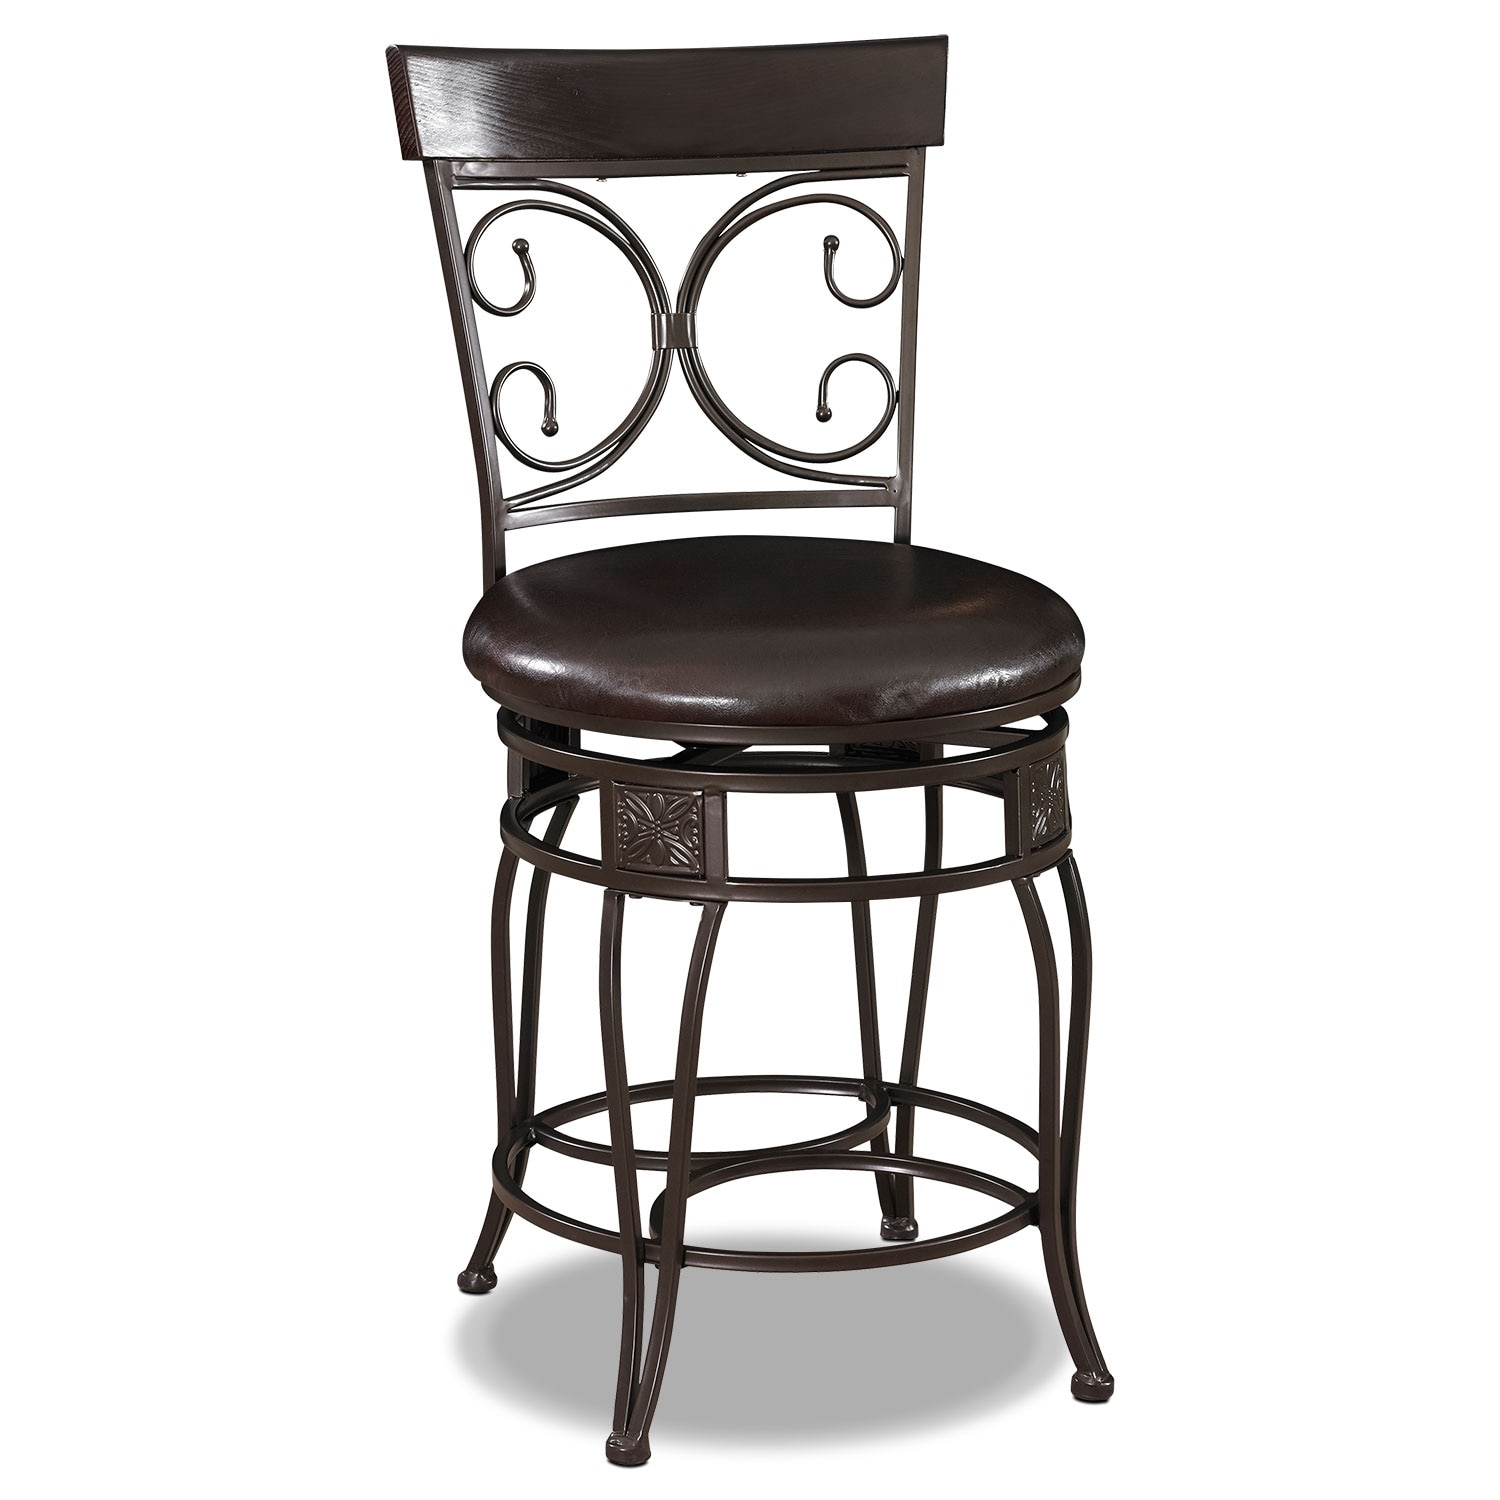 Dining Room Furniture - Grandview Counter-Height Stool - Black